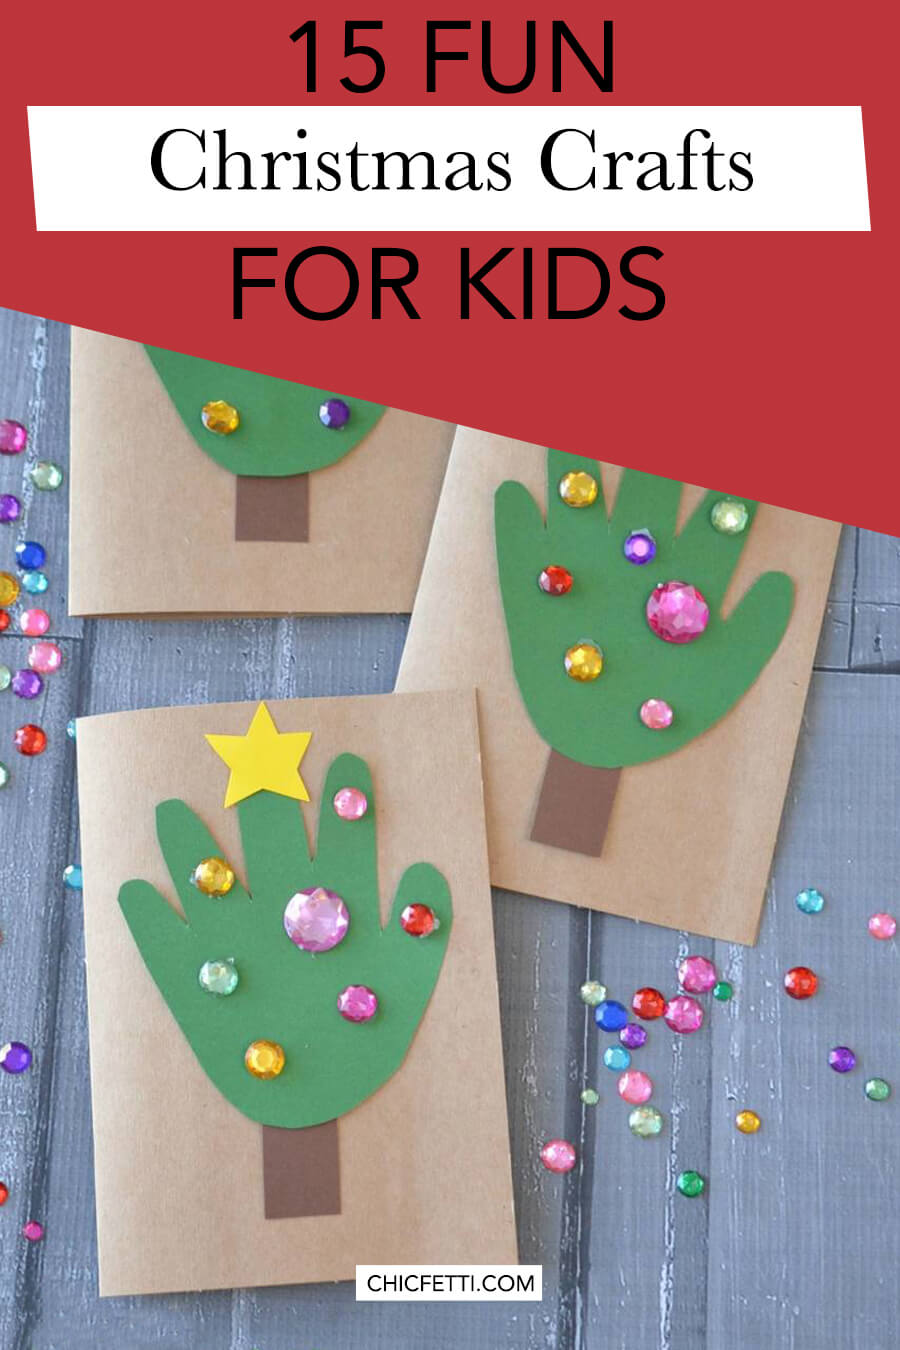 15 Fun Christmas Crafts for Kids - make crafts with your kids for Christmas. Kids will have fun make these Christmas crafts #christmas #christmasideas #christmascrafts #kidscrafts #crafts #craftsforkids #christmascraftsforkids